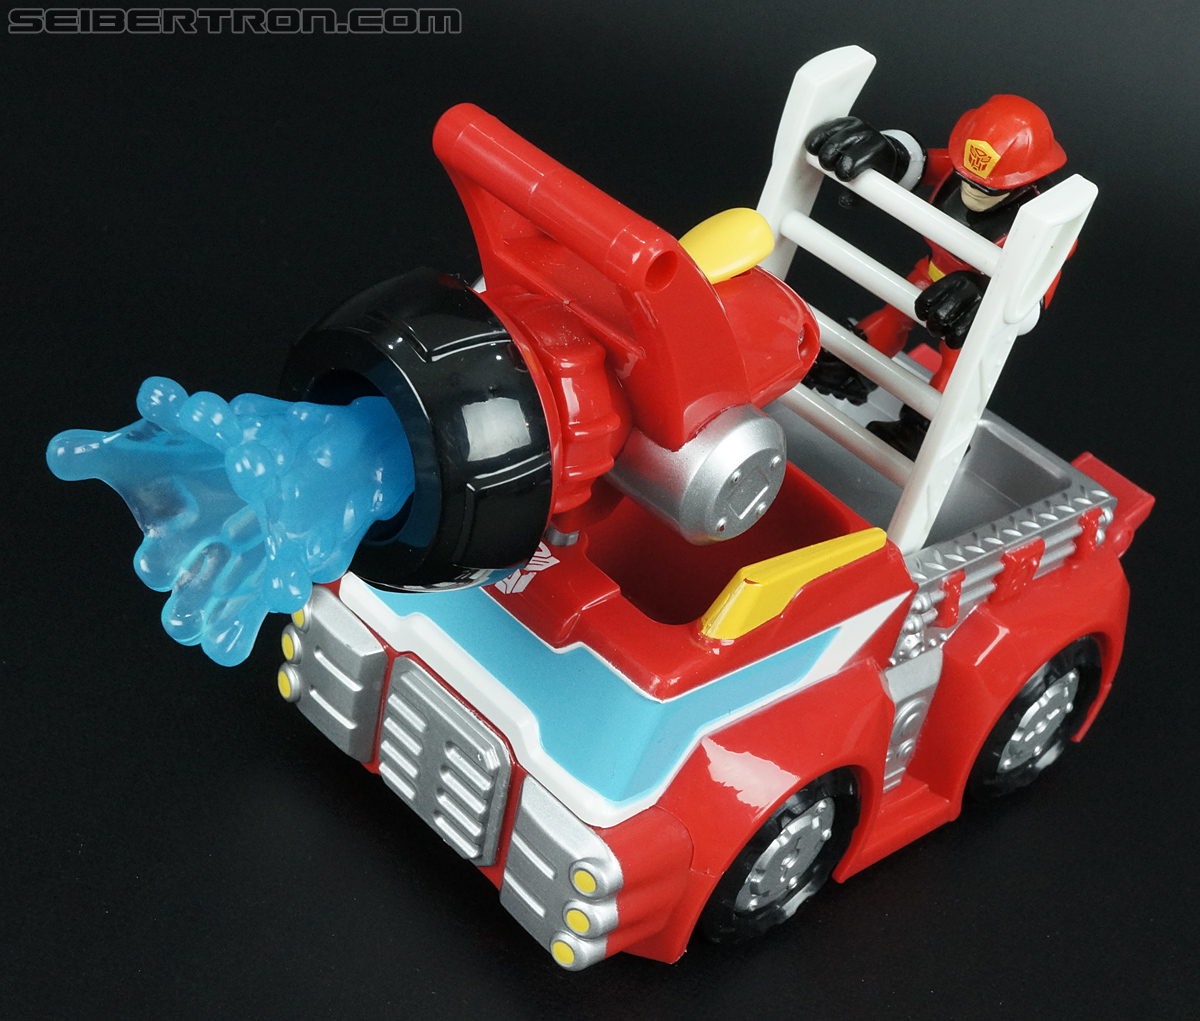 Transformers Rescue Bots Heatwave the Fire-Bot (Fire Station Prime) (Image #11 of 64)